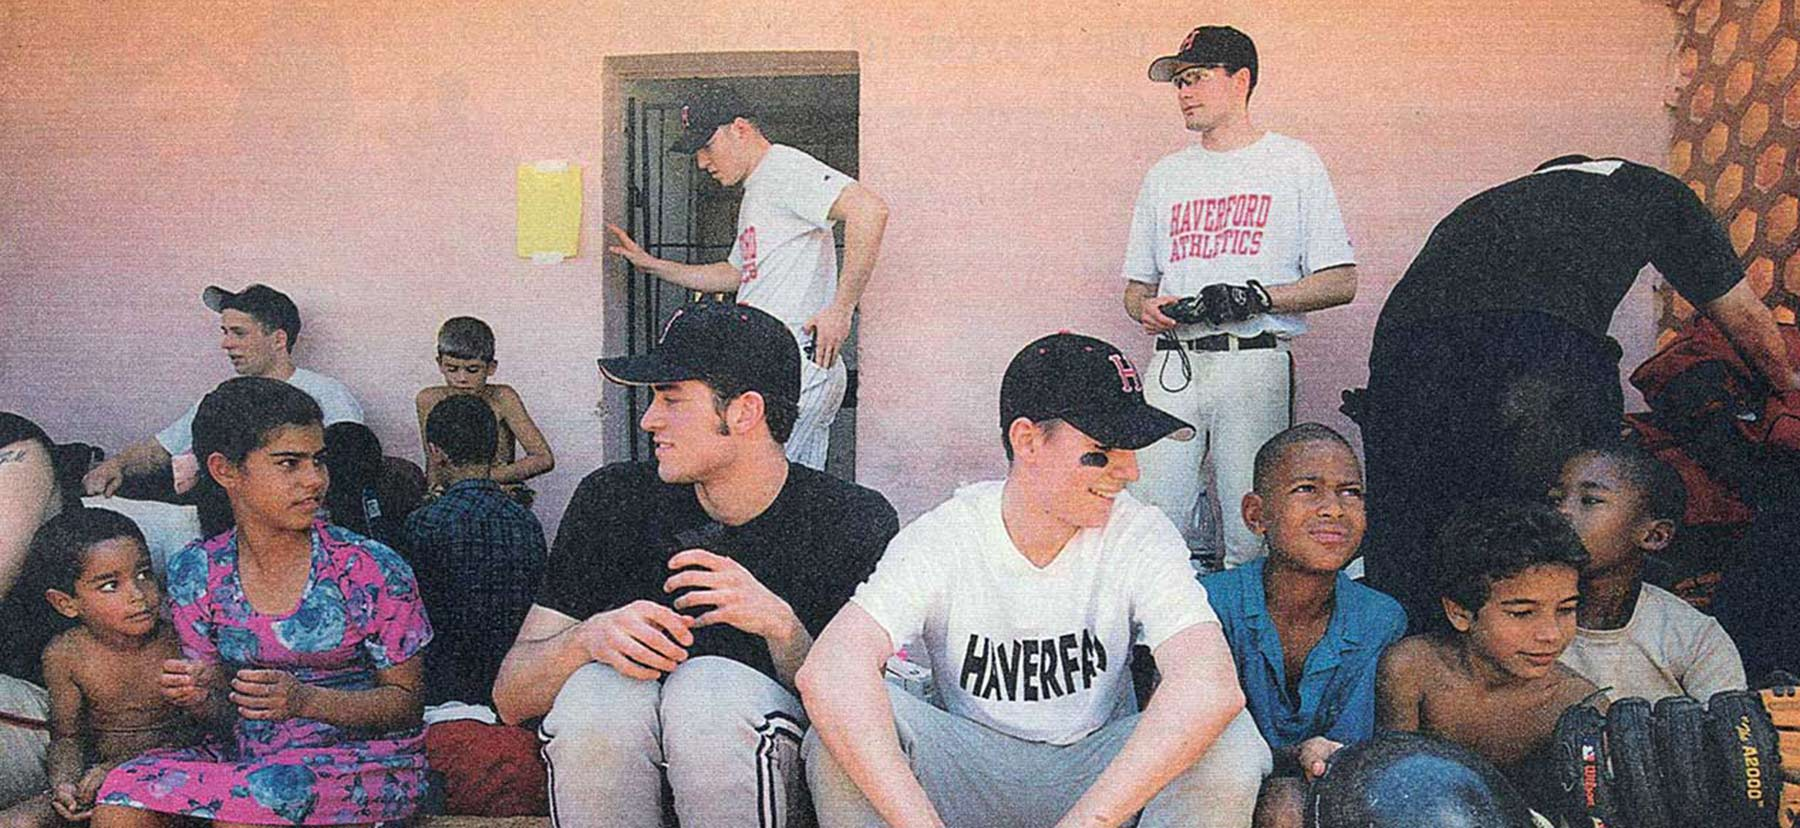 Members of the Haverford College baseball team with children in Cuba